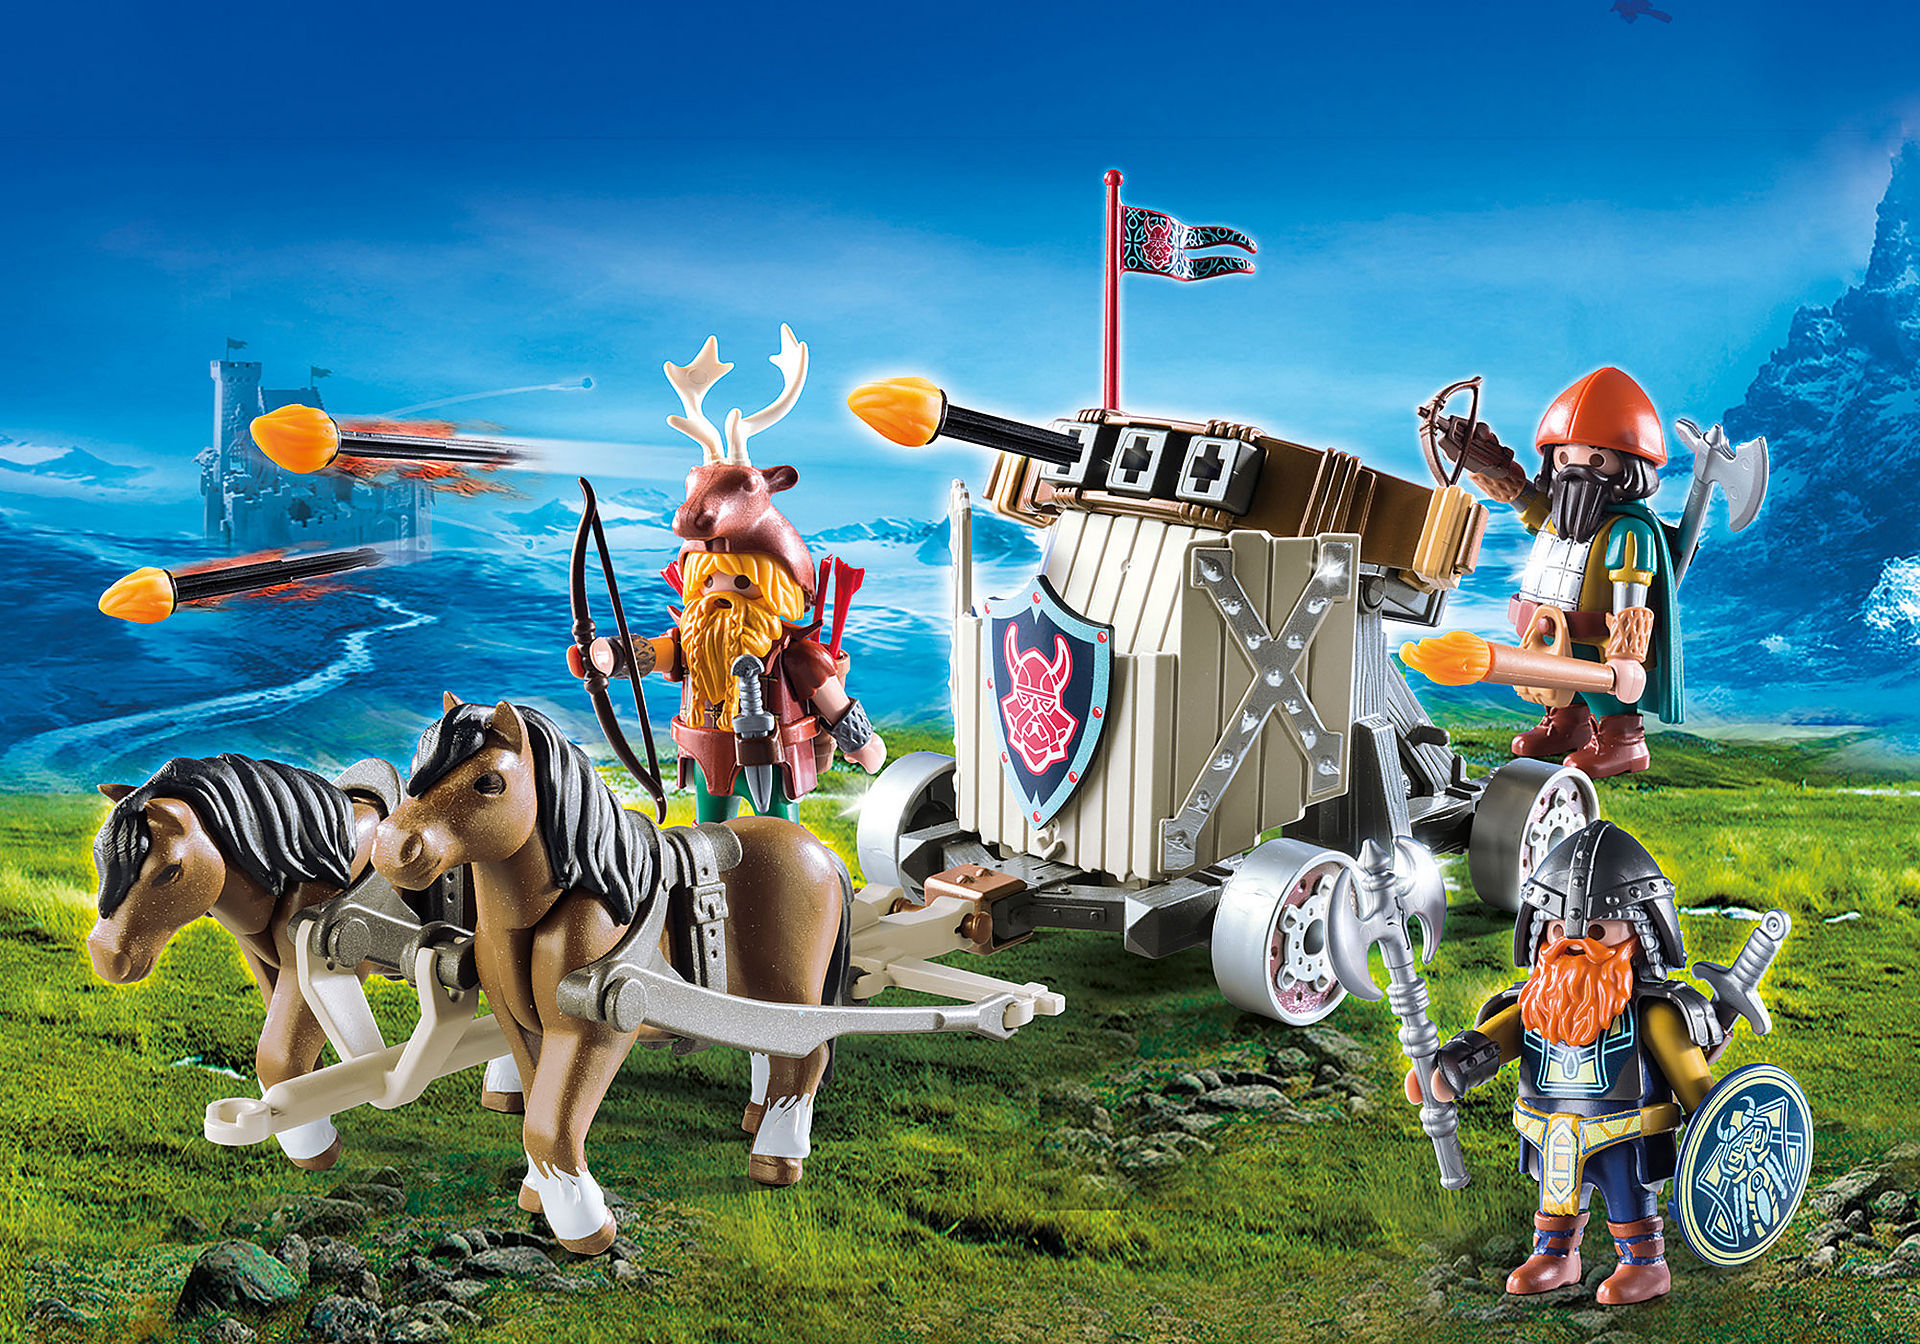 http://media.playmobil.com/i/playmobil/9341_product_detail/Βαλλίστρα με κάρο αλόγων